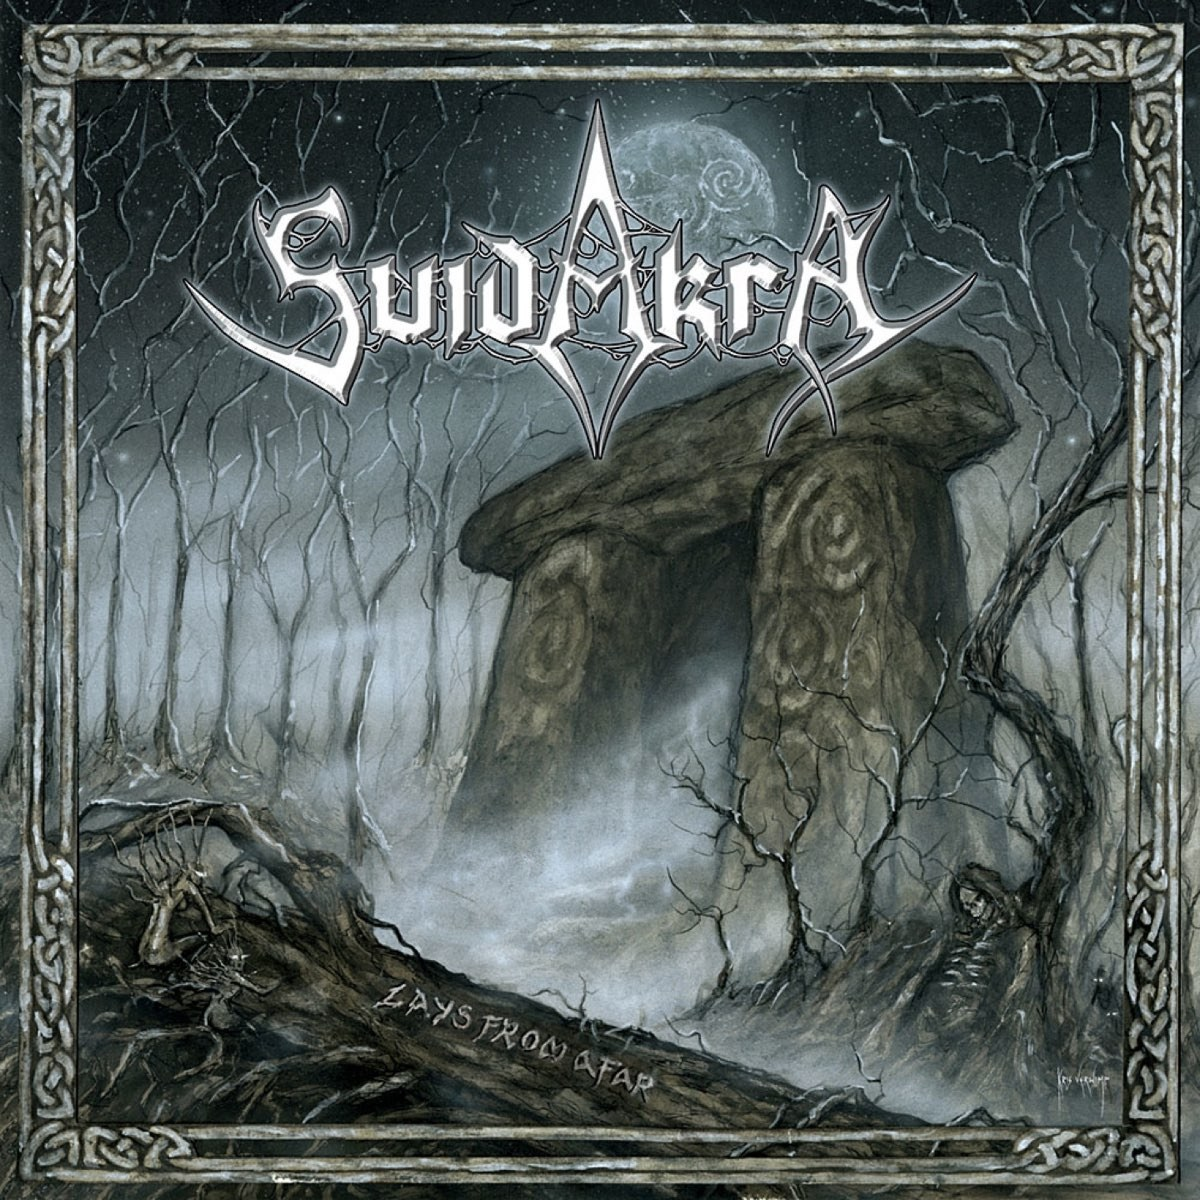 Review for Suidakra - Lays from Afar